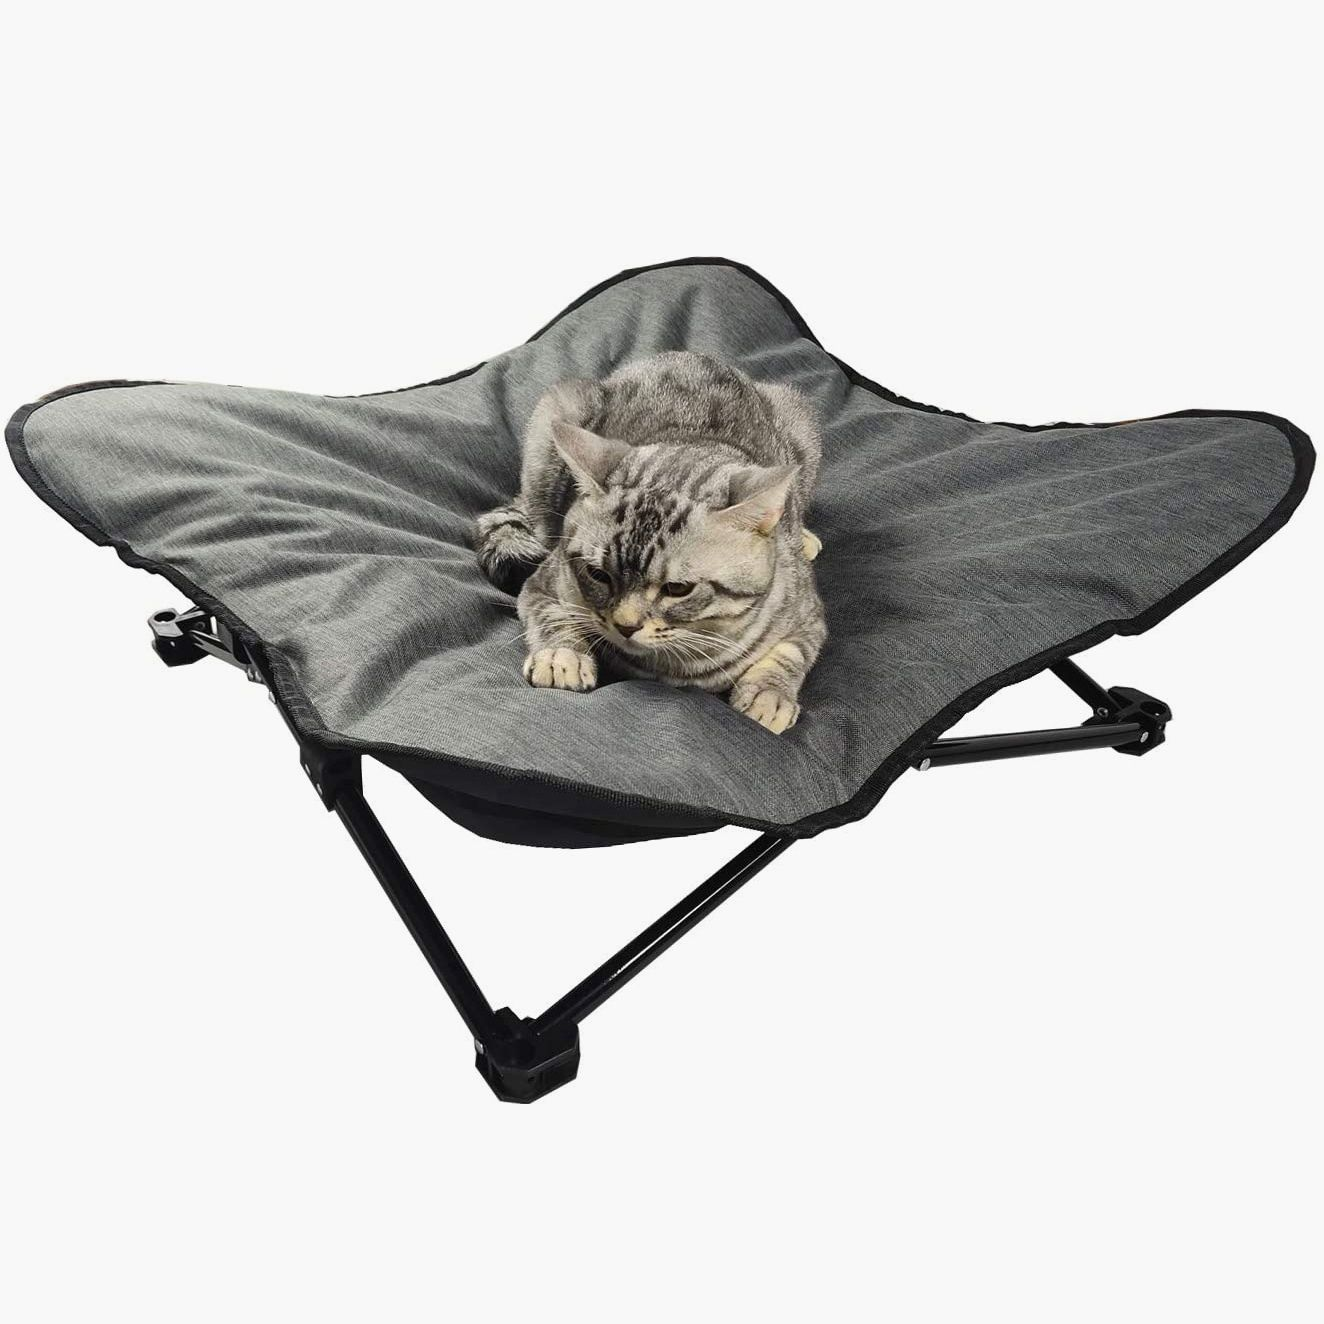 Elevated Folding Dog Bed Indoor Outdoor Pet Camping Raised Cot for Small Medium or Large Dogs